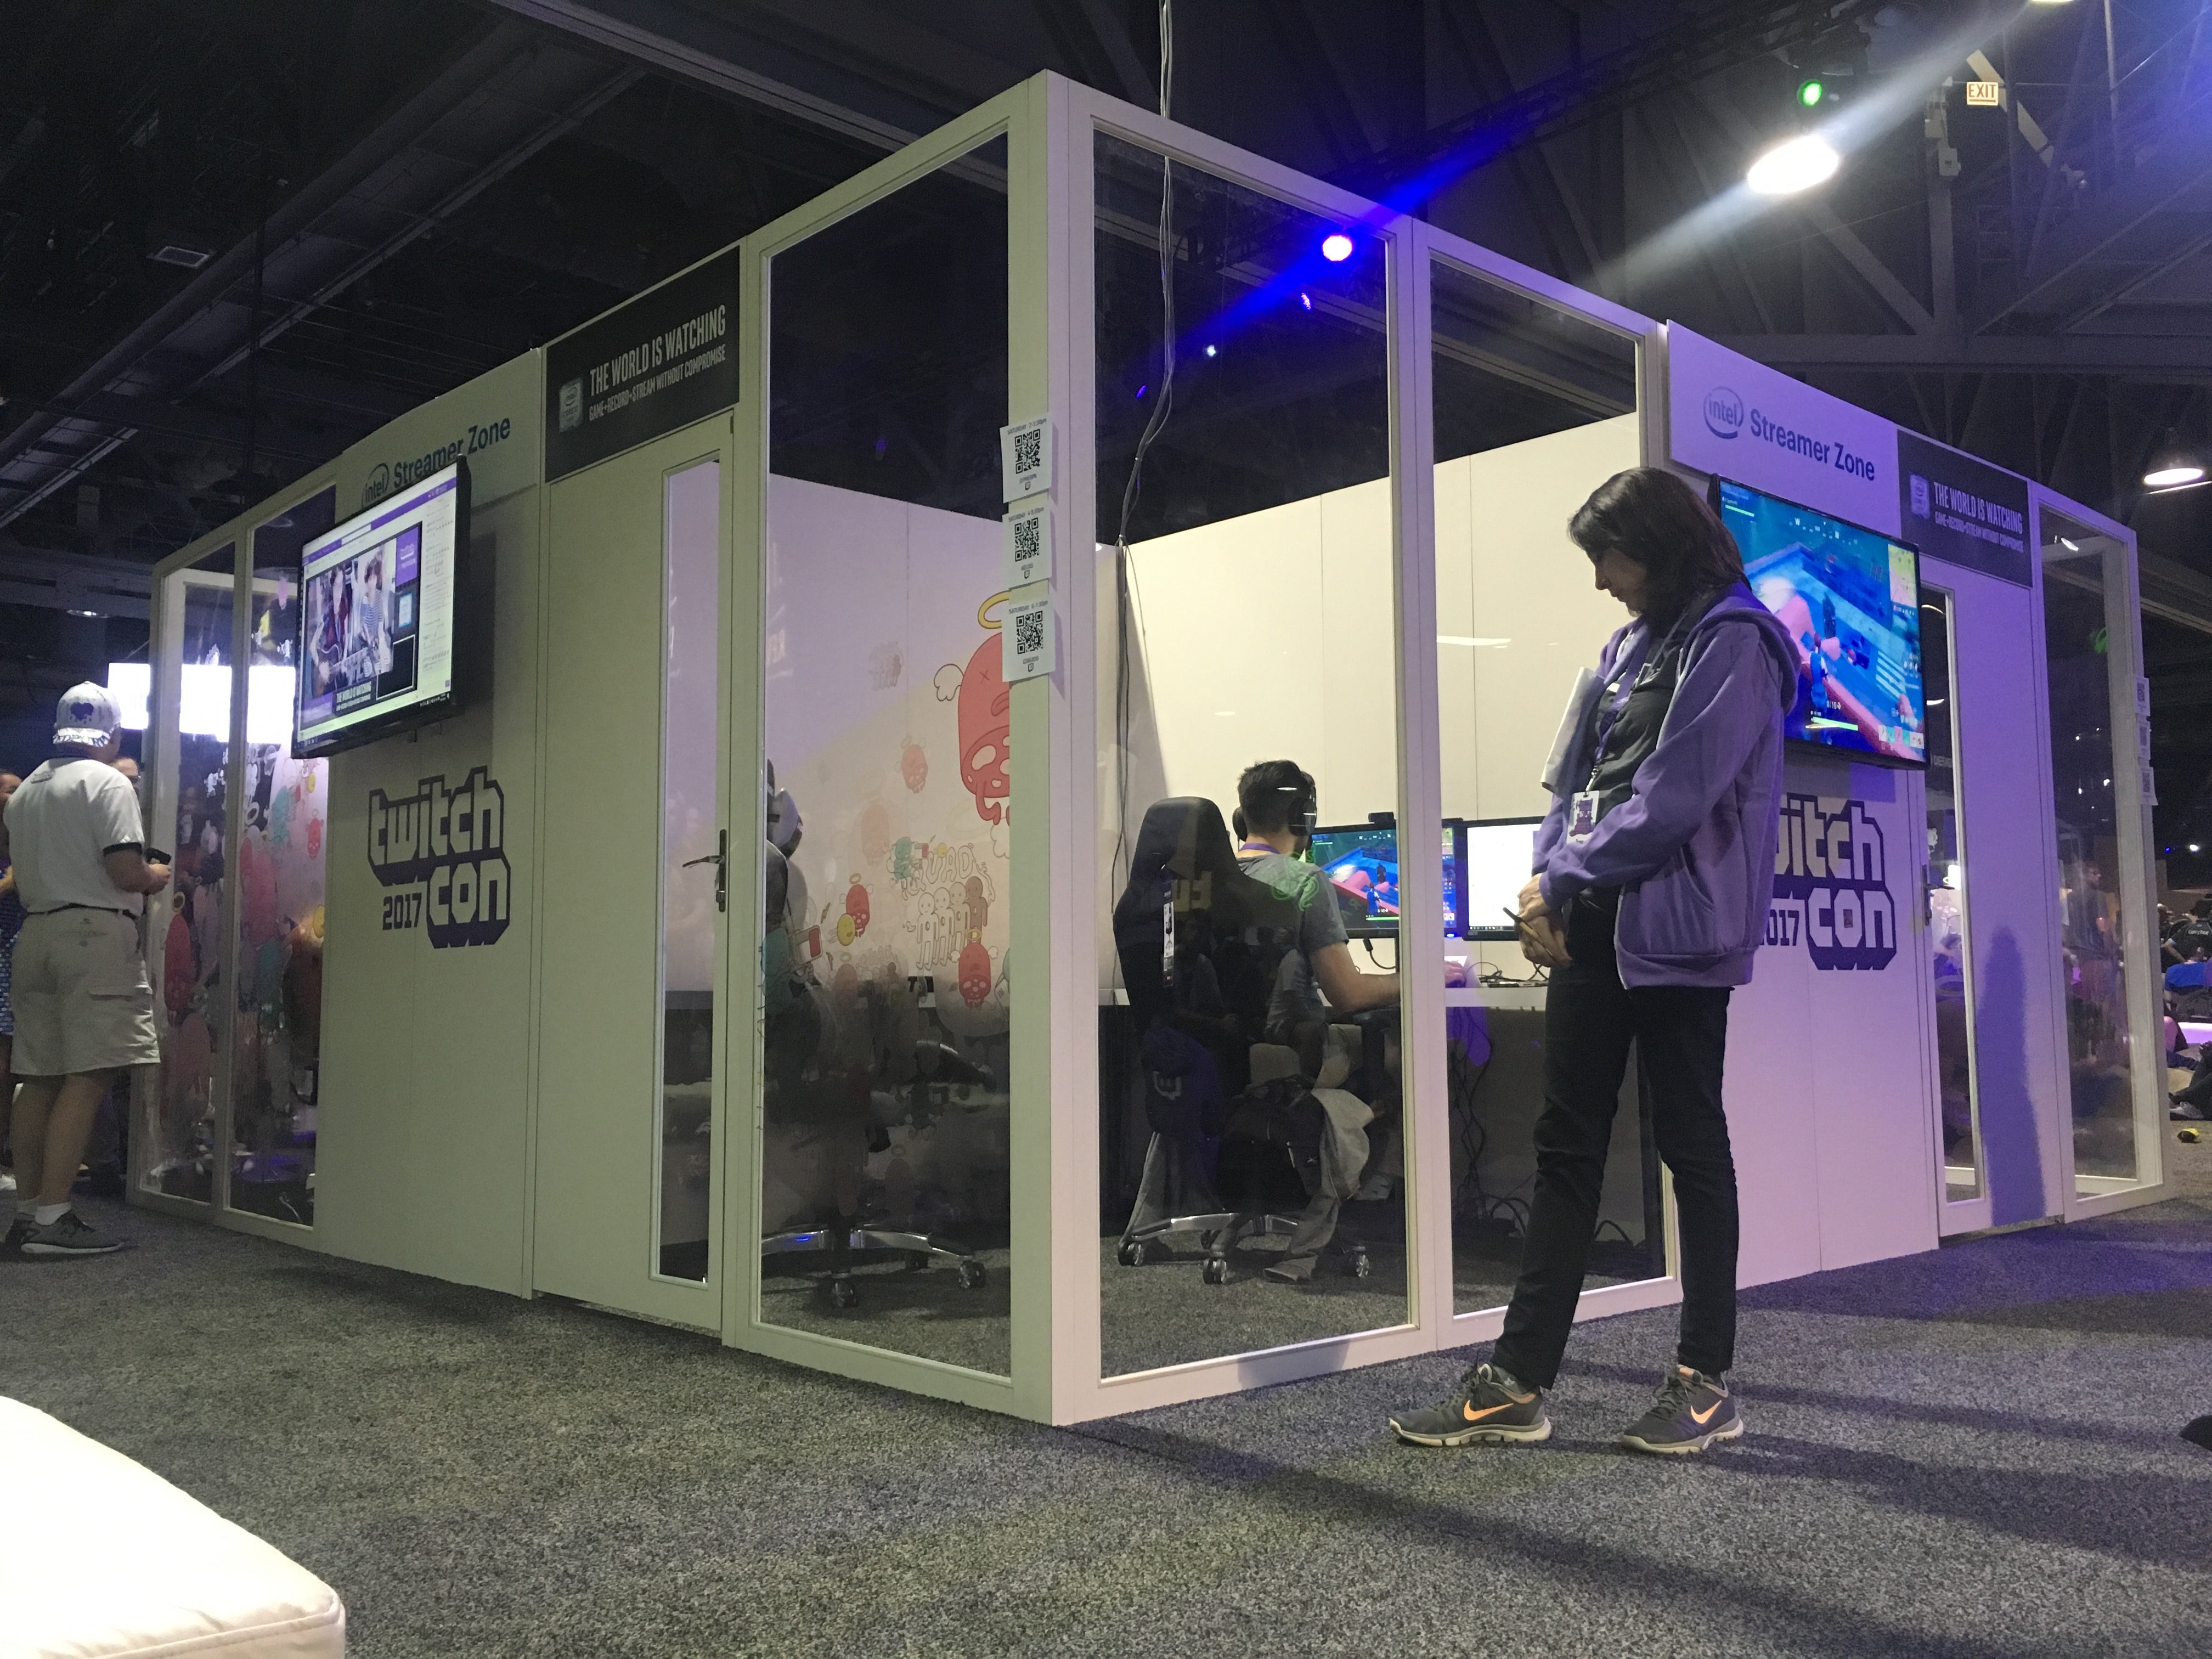 TwitchCon's Glass 'Streamer Zones' Make Streaming Nerve-Wracking